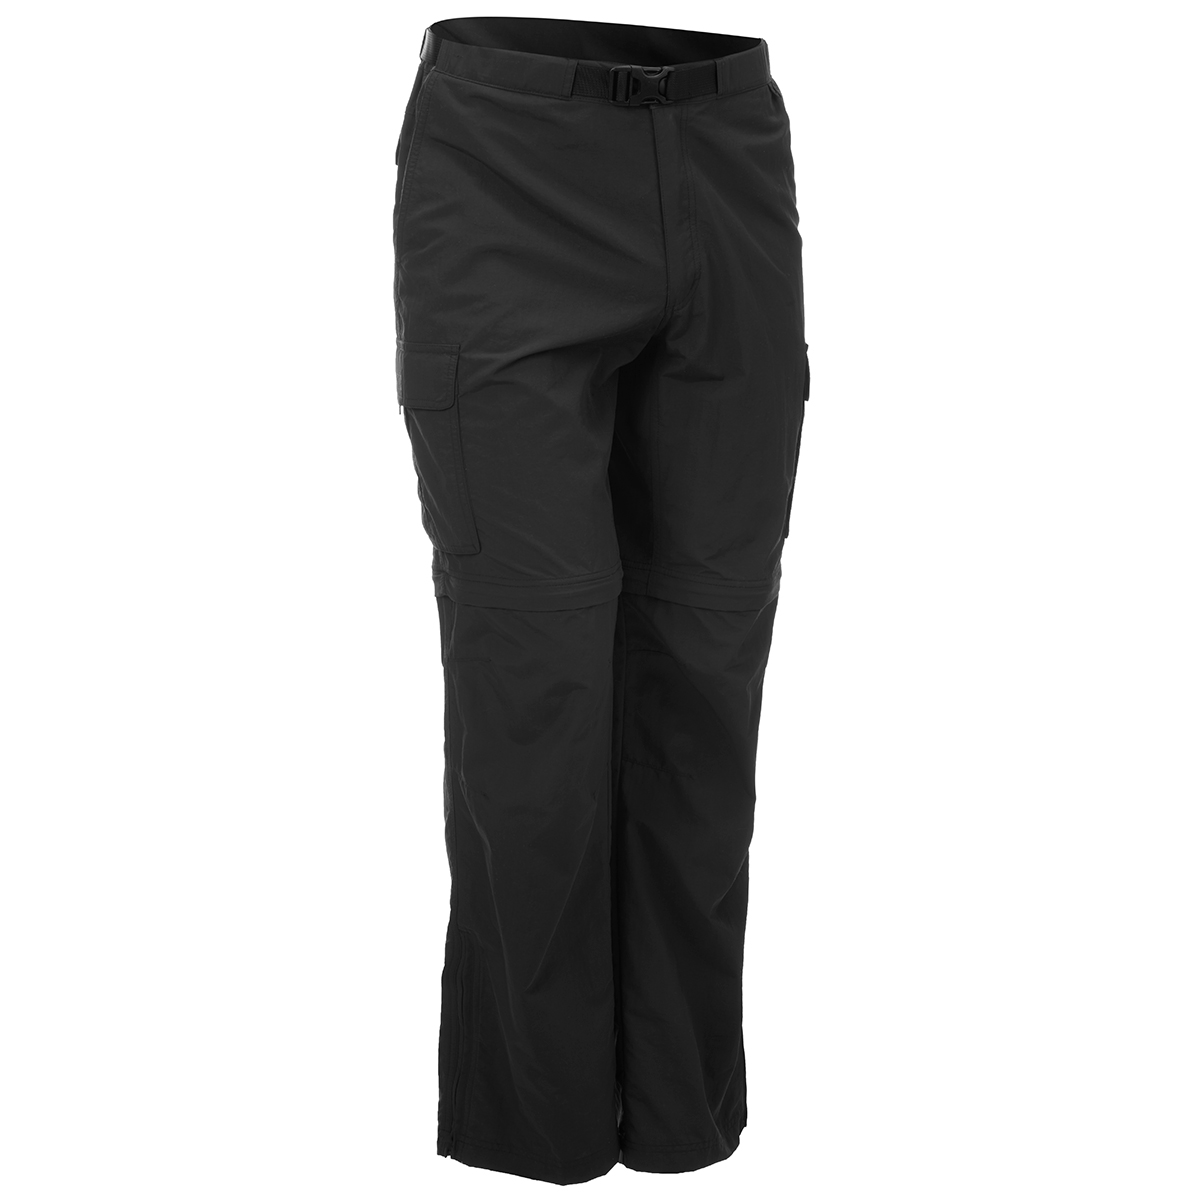 Ems Men's Camp Cargo Zip-Off Pants - Black, 42/32